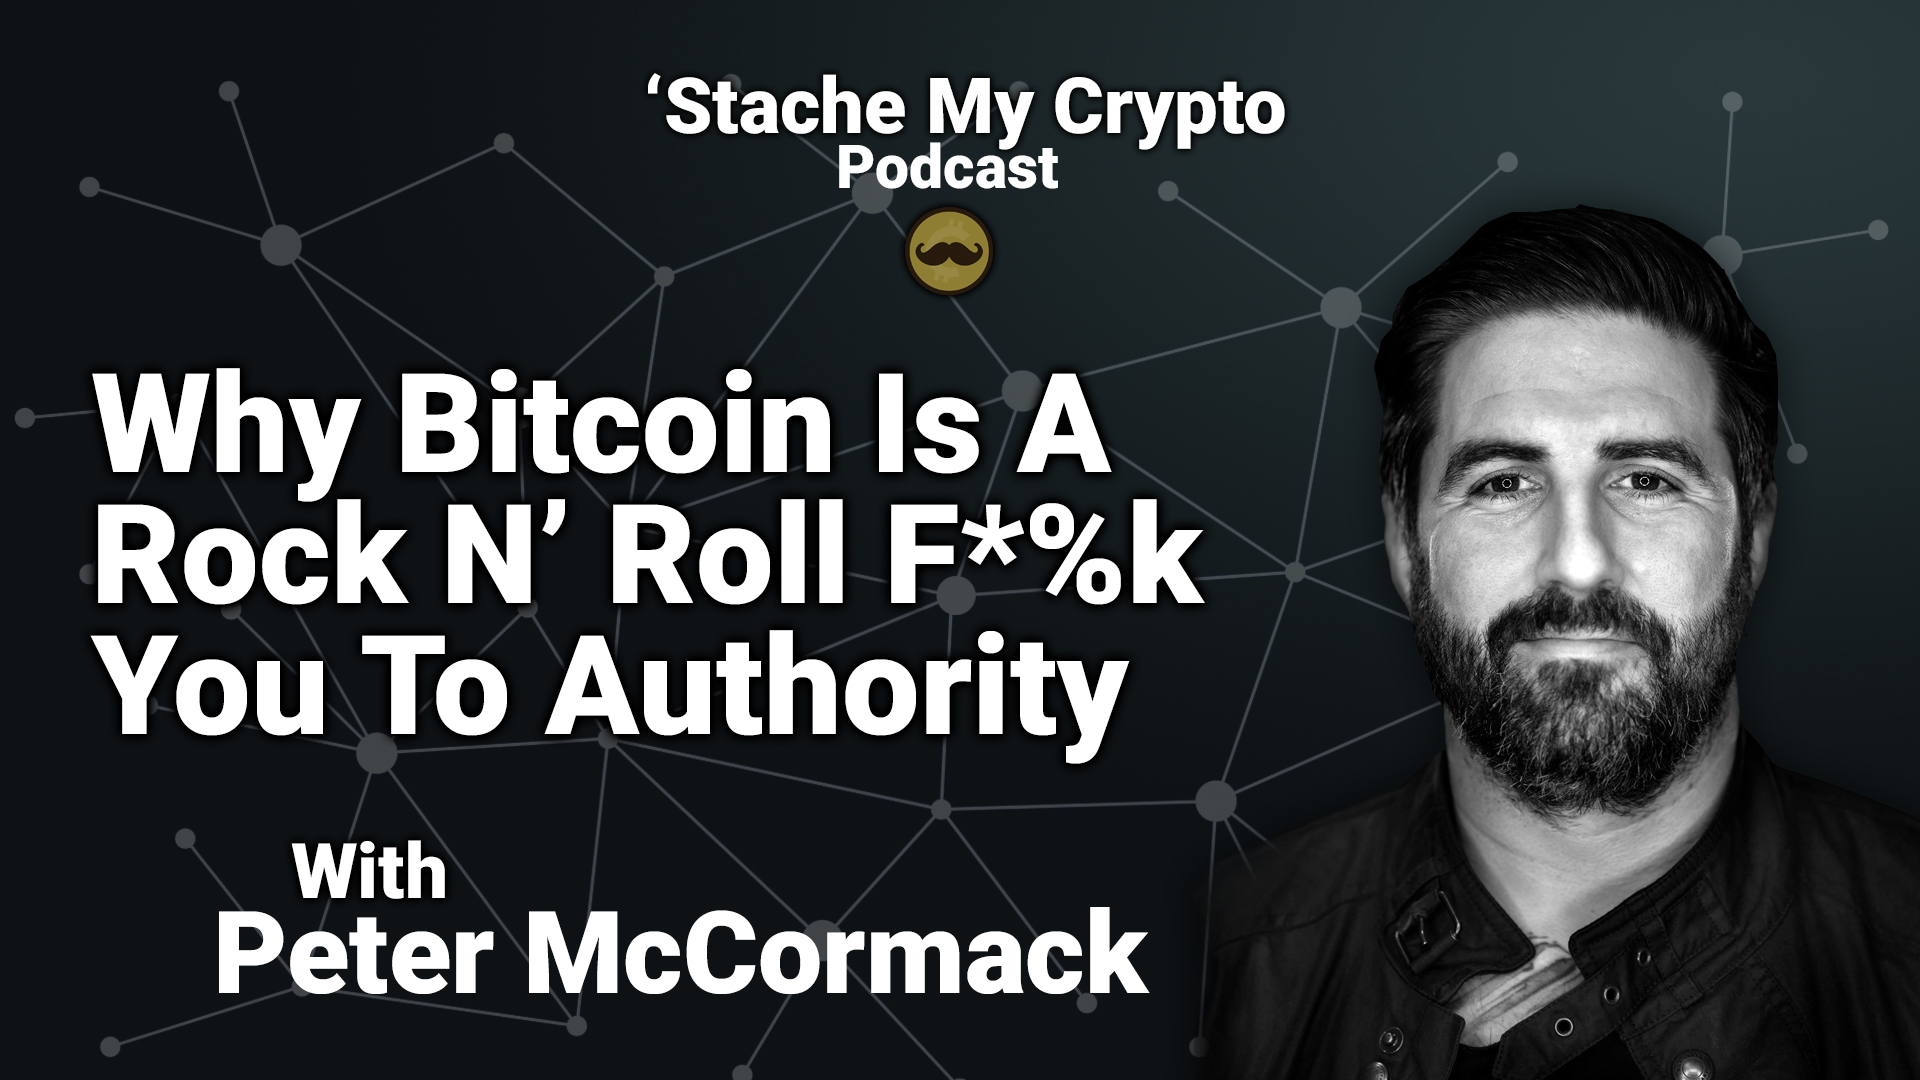 peter mccormack what bitcoin did podcast guest host